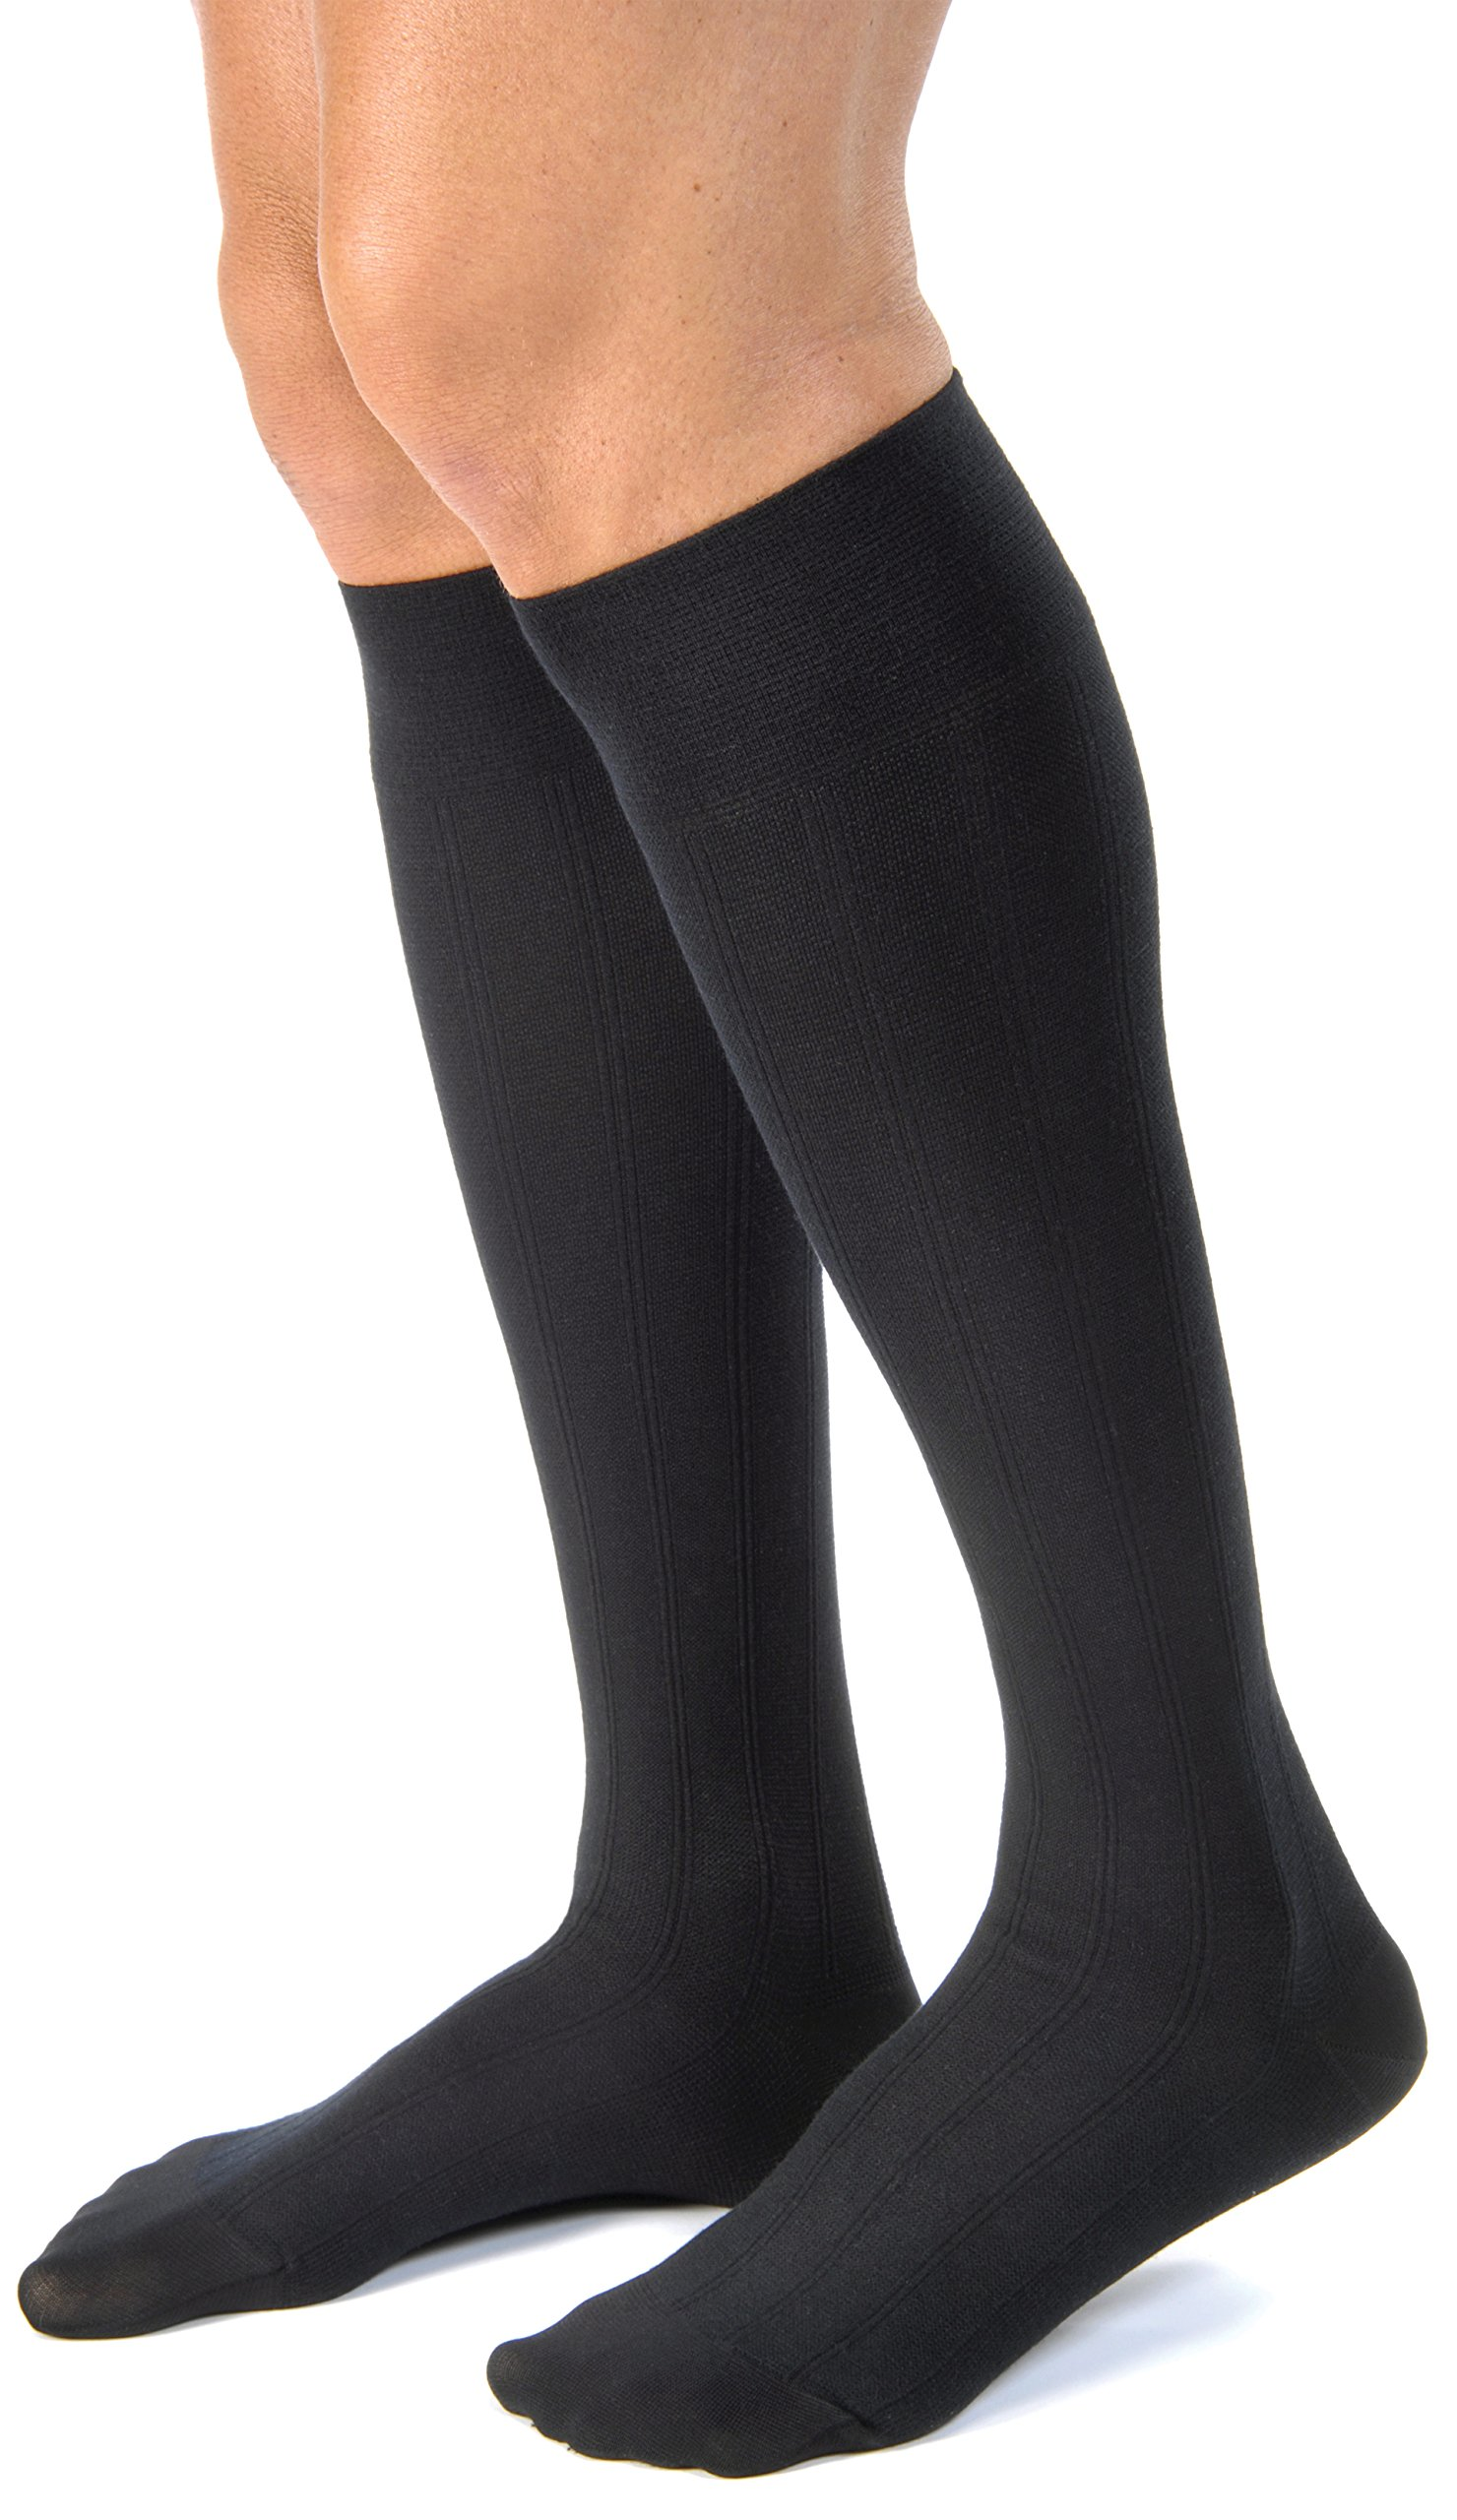 BSN Medical 113101 JOBST Men's Casual Sock with Closed Toe, Knee High, 15-20 mmHG, Medium, Black by BSN Medical/Jobst